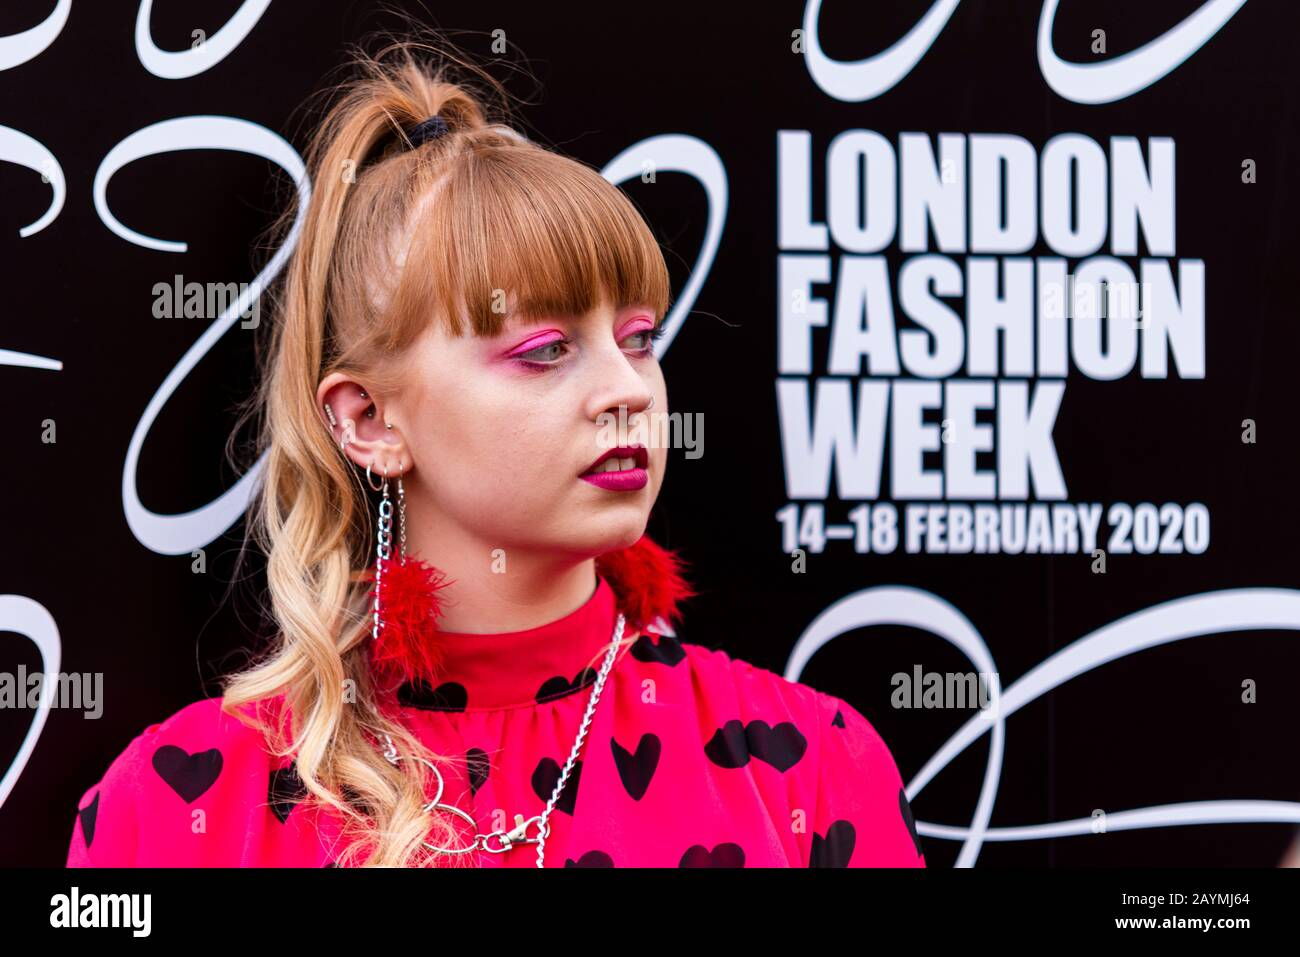 a-fashionista-female-posing-in-the-strand-outside-the-store-during-london-fashion-week-2020-brand-logo-pink-eye-shadow-dates-2AYMJ64.jpg